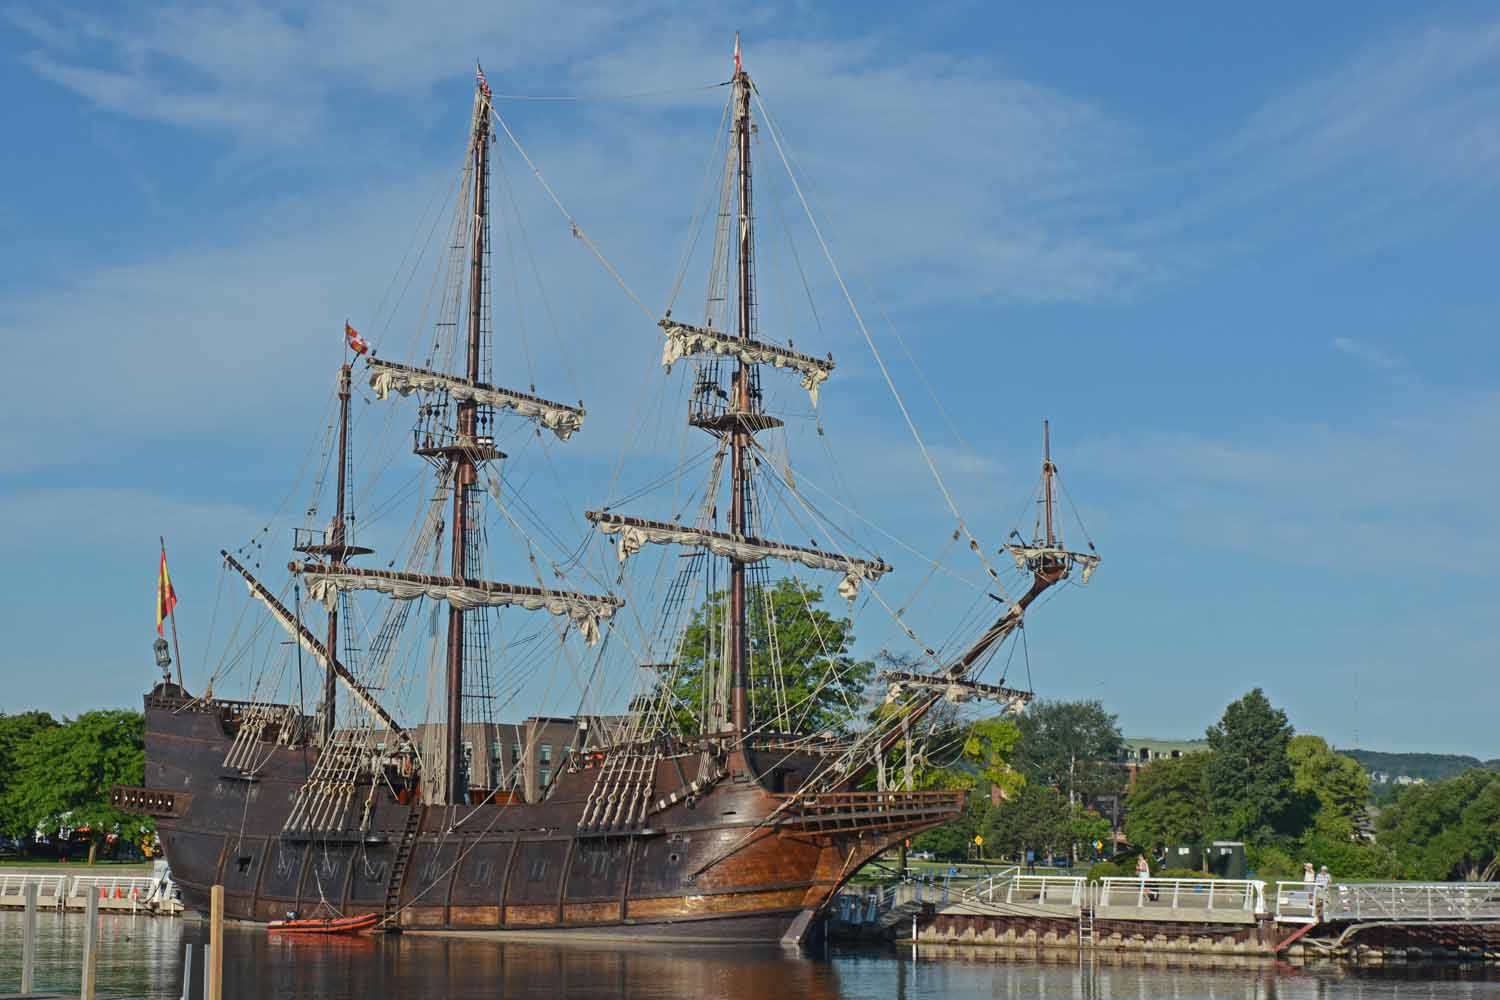 We Saw The El Galeon In Savannah In The Spring